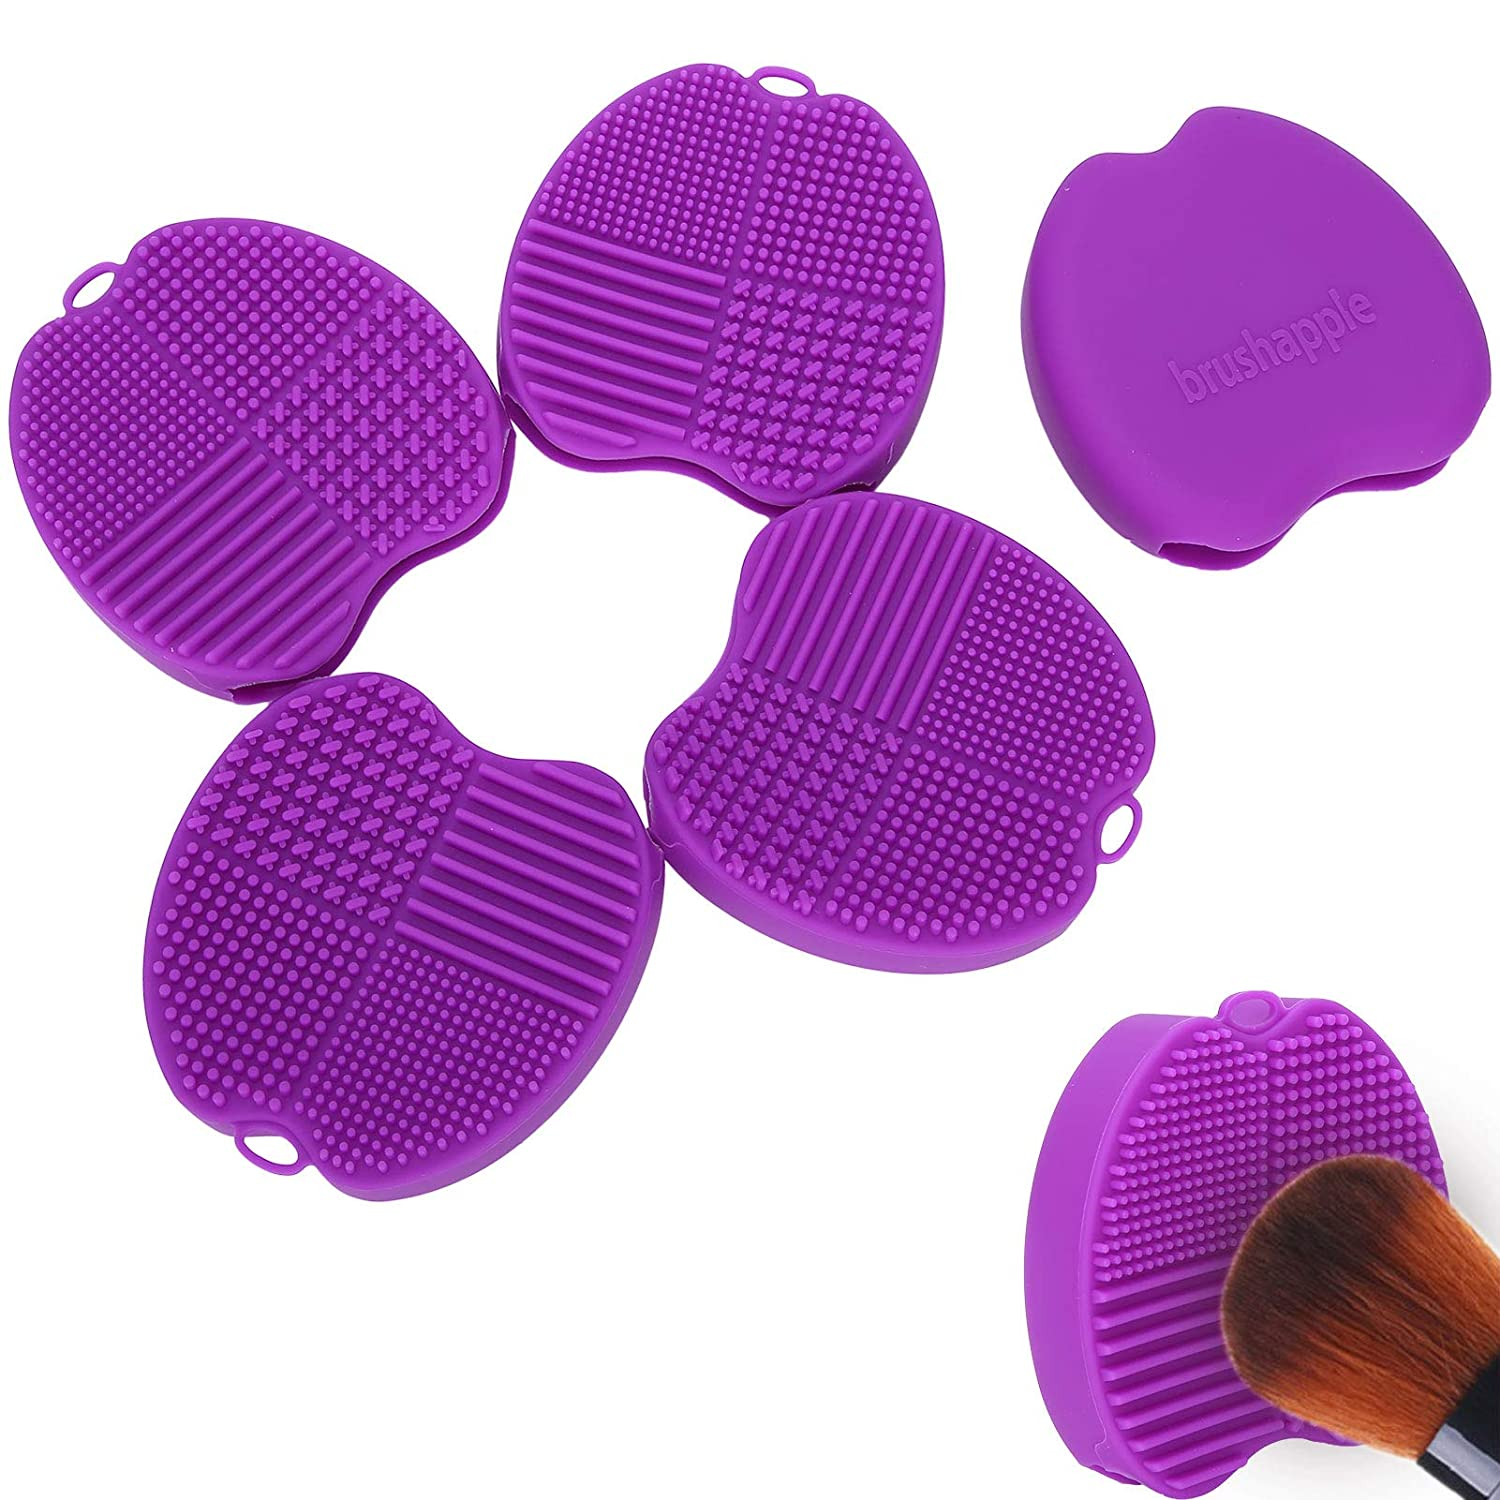 5pcs Makeup Spring new work one after another Brush Cleaner Dark Scrubber Pad Purple Ranking TOP12 Cl Portable